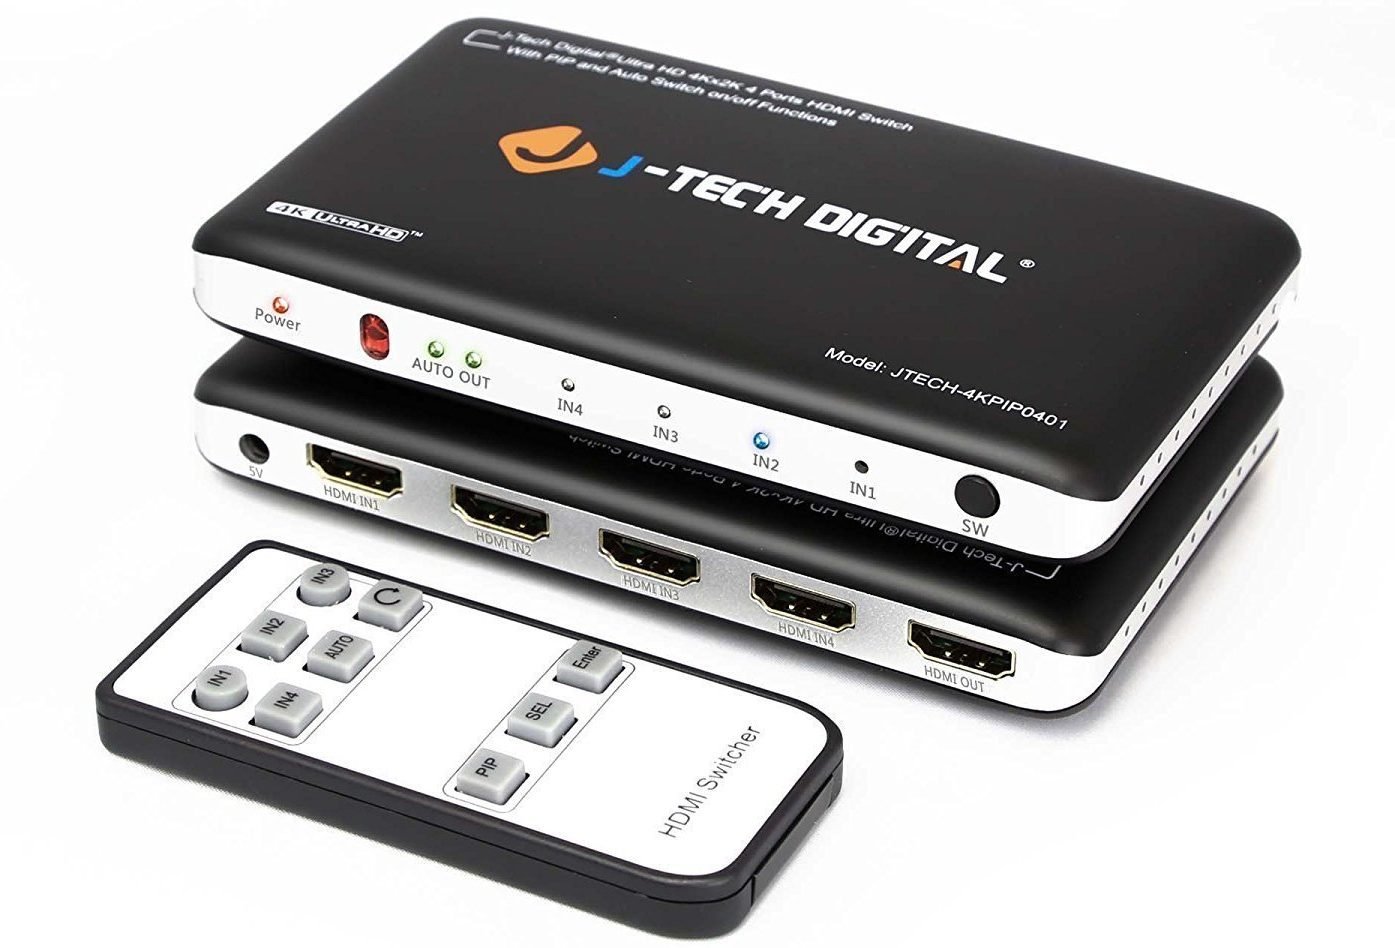 j-tech-digital-hdmi-switch-with-remote-review